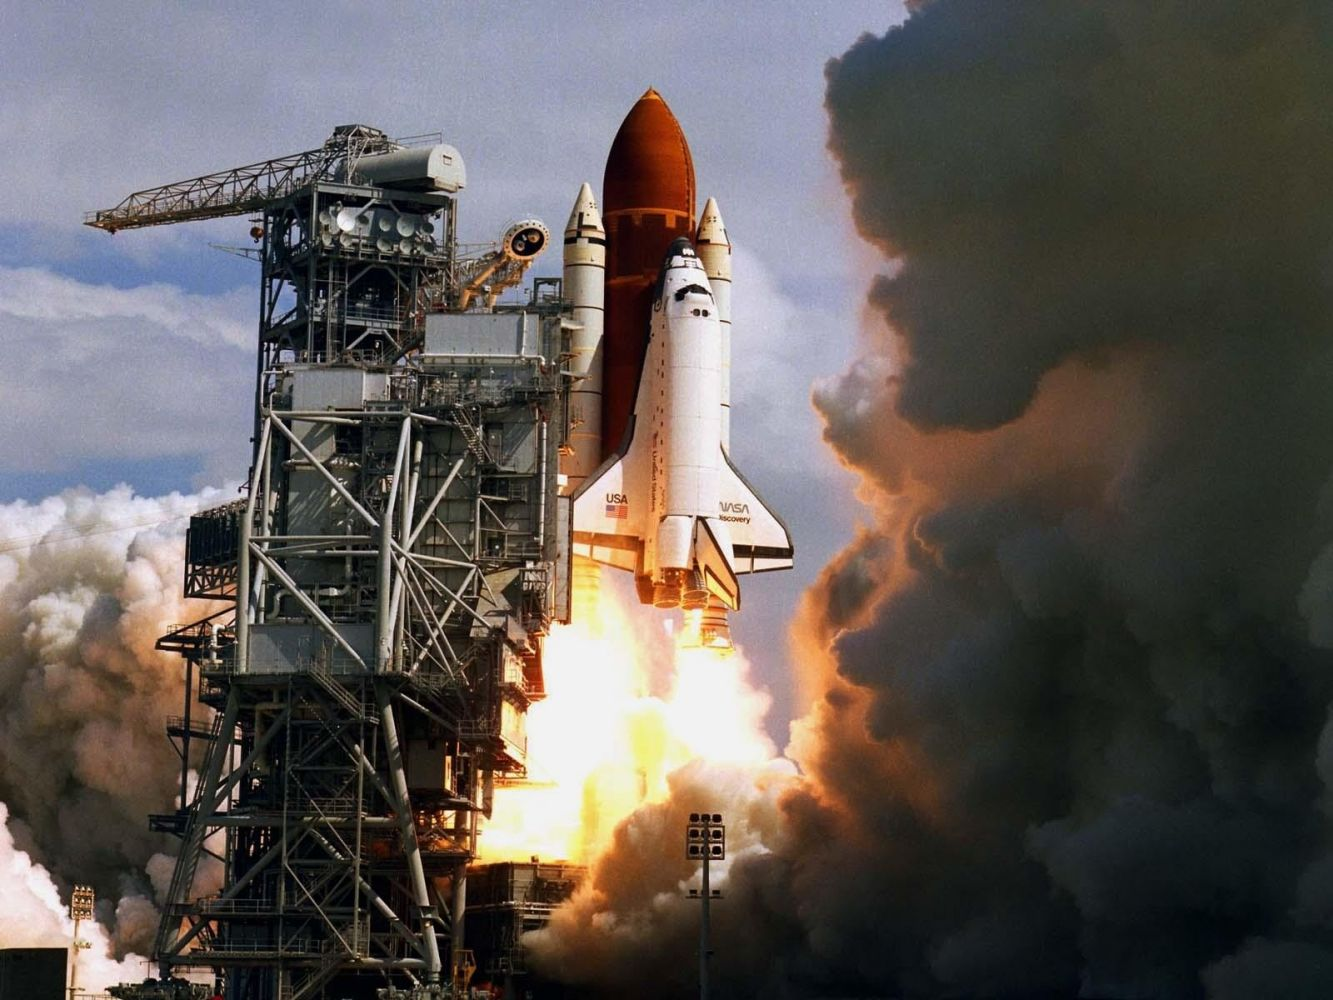 space shuttle disasters - HD1333×1000